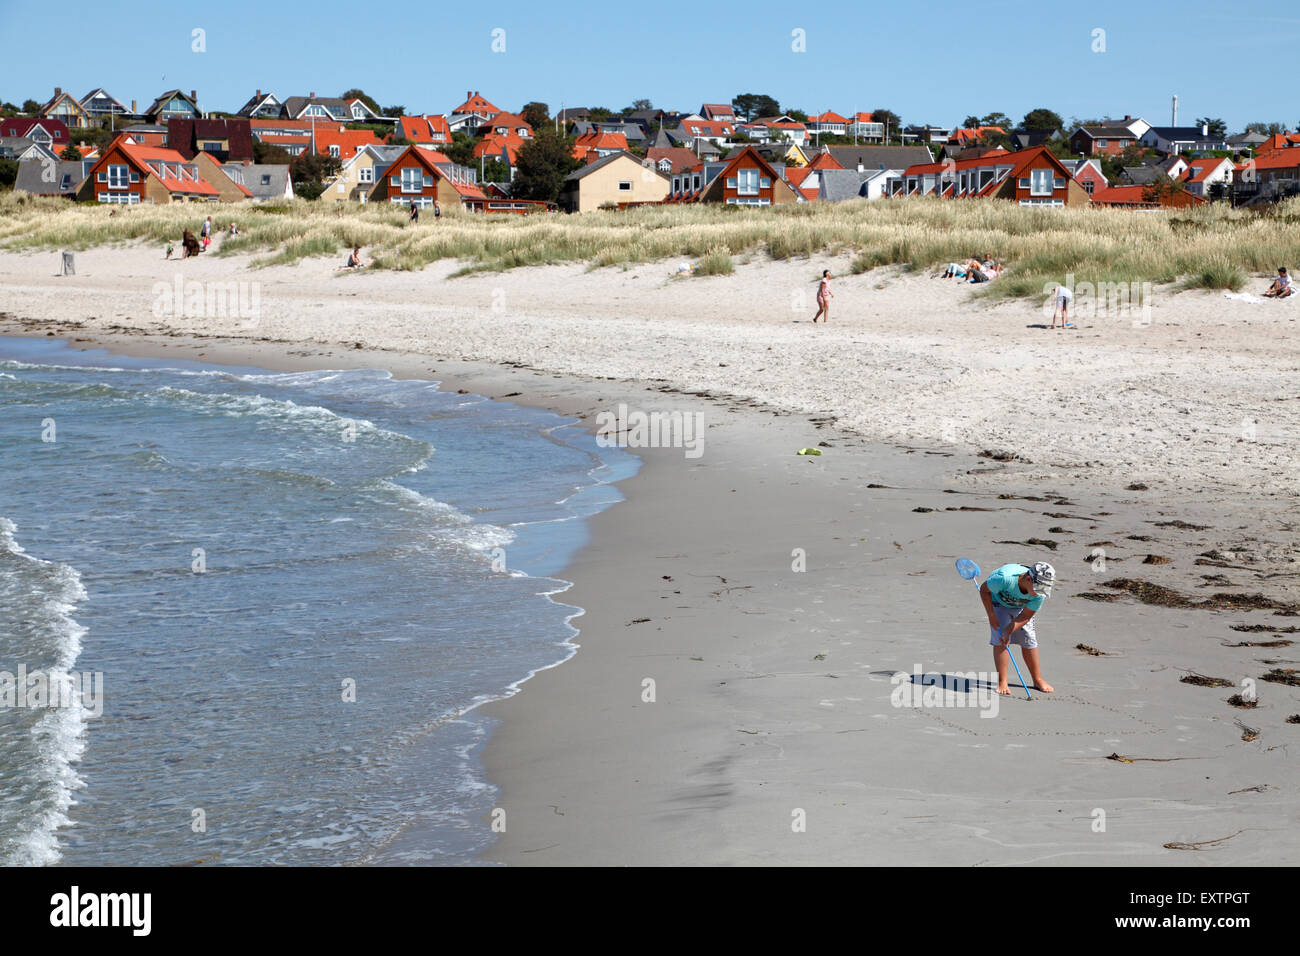 Surf at Hundested Beach on a summer's day. Boy drawing in the sand with a stick. - Stock Image